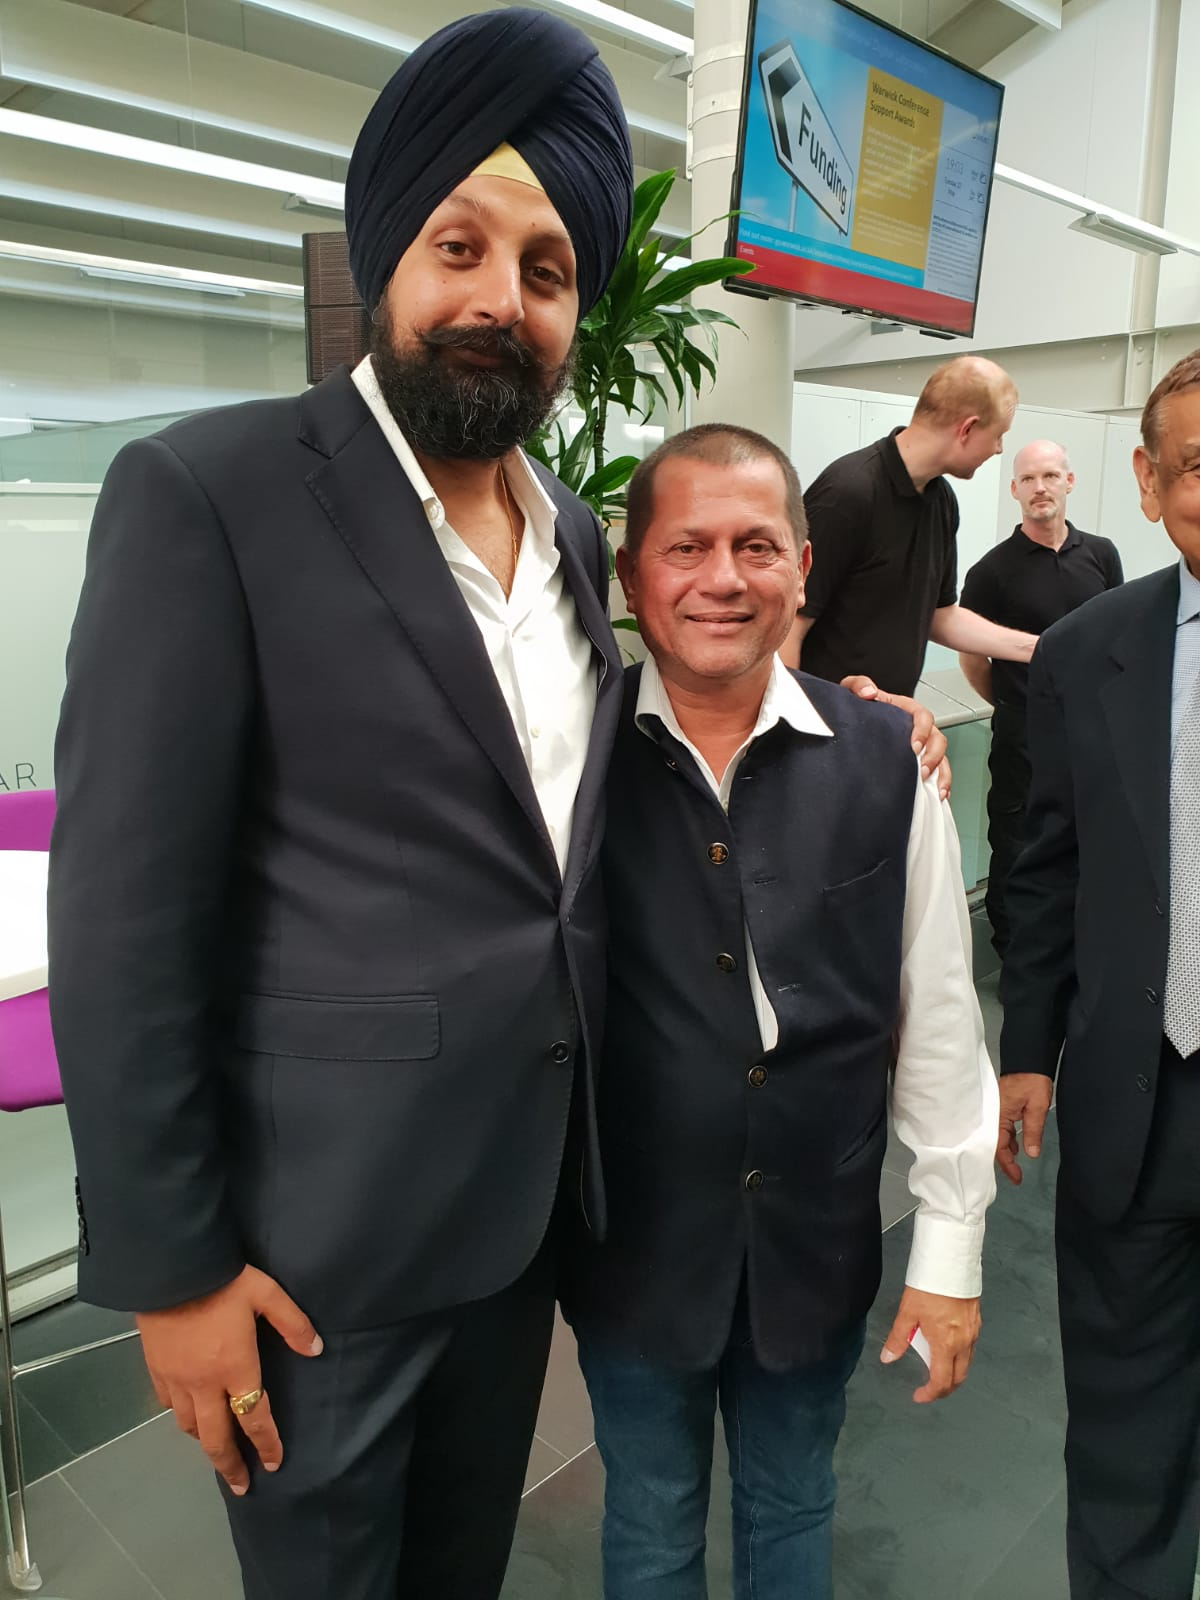 CEO of BritAsia TV, Tony Shergill, with Dr. Achyuta Samanta